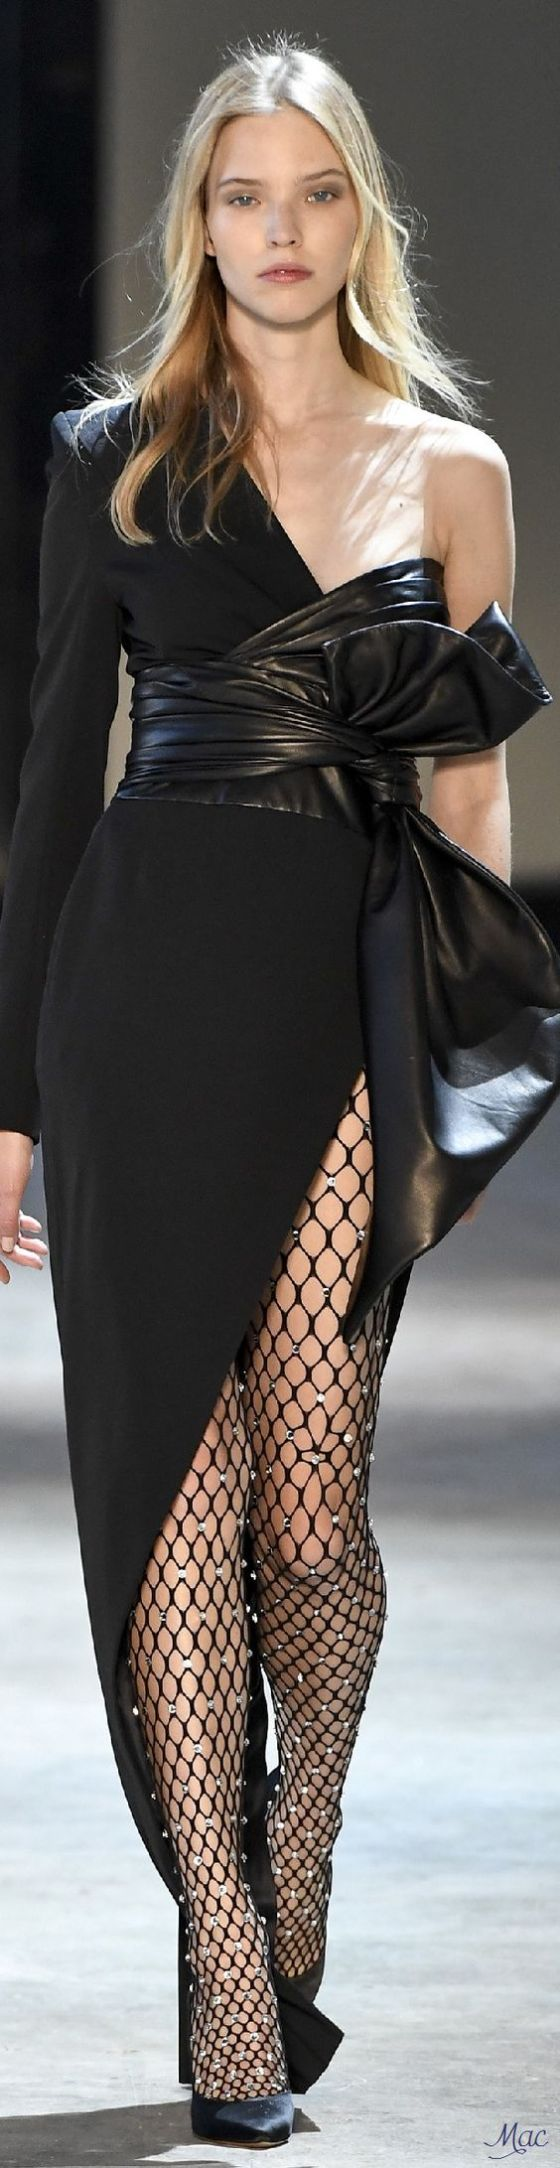 2016-trends-fishnet-tights-runway-pamabelaproject